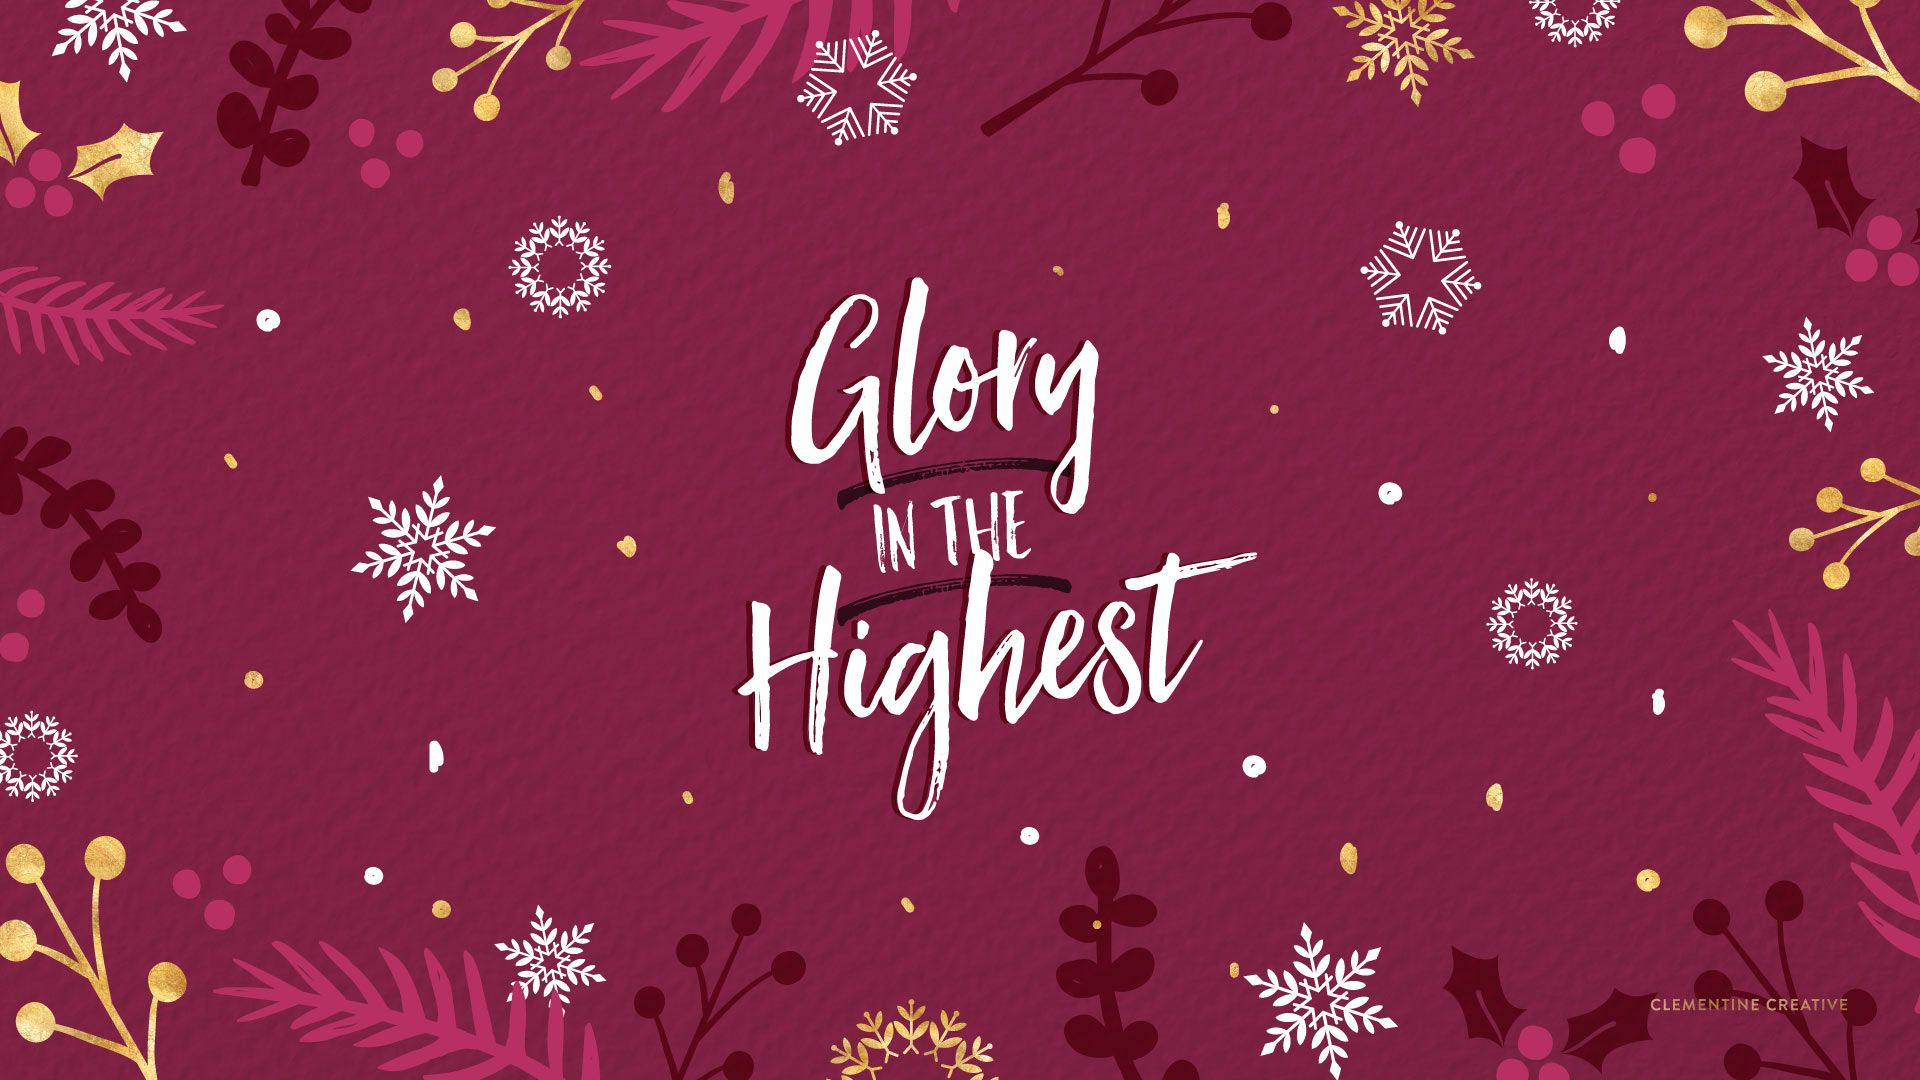 www.clementinecreative.co.za wp-content uploads 2017 11 glory-in-the